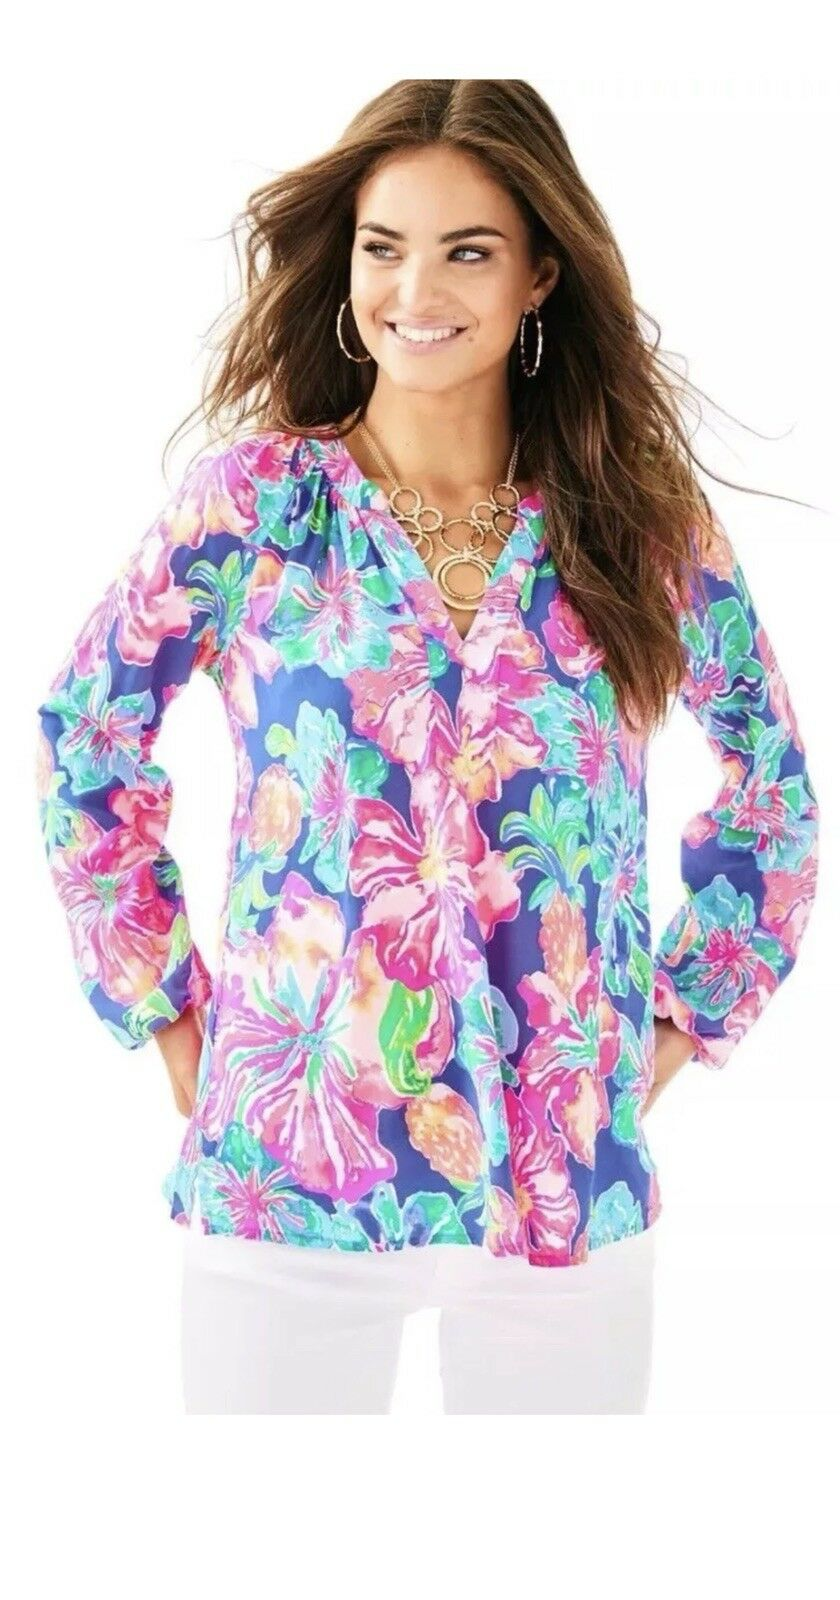 Lilly Pulitzer MARTINIQUE Top XS NWT RETAIL